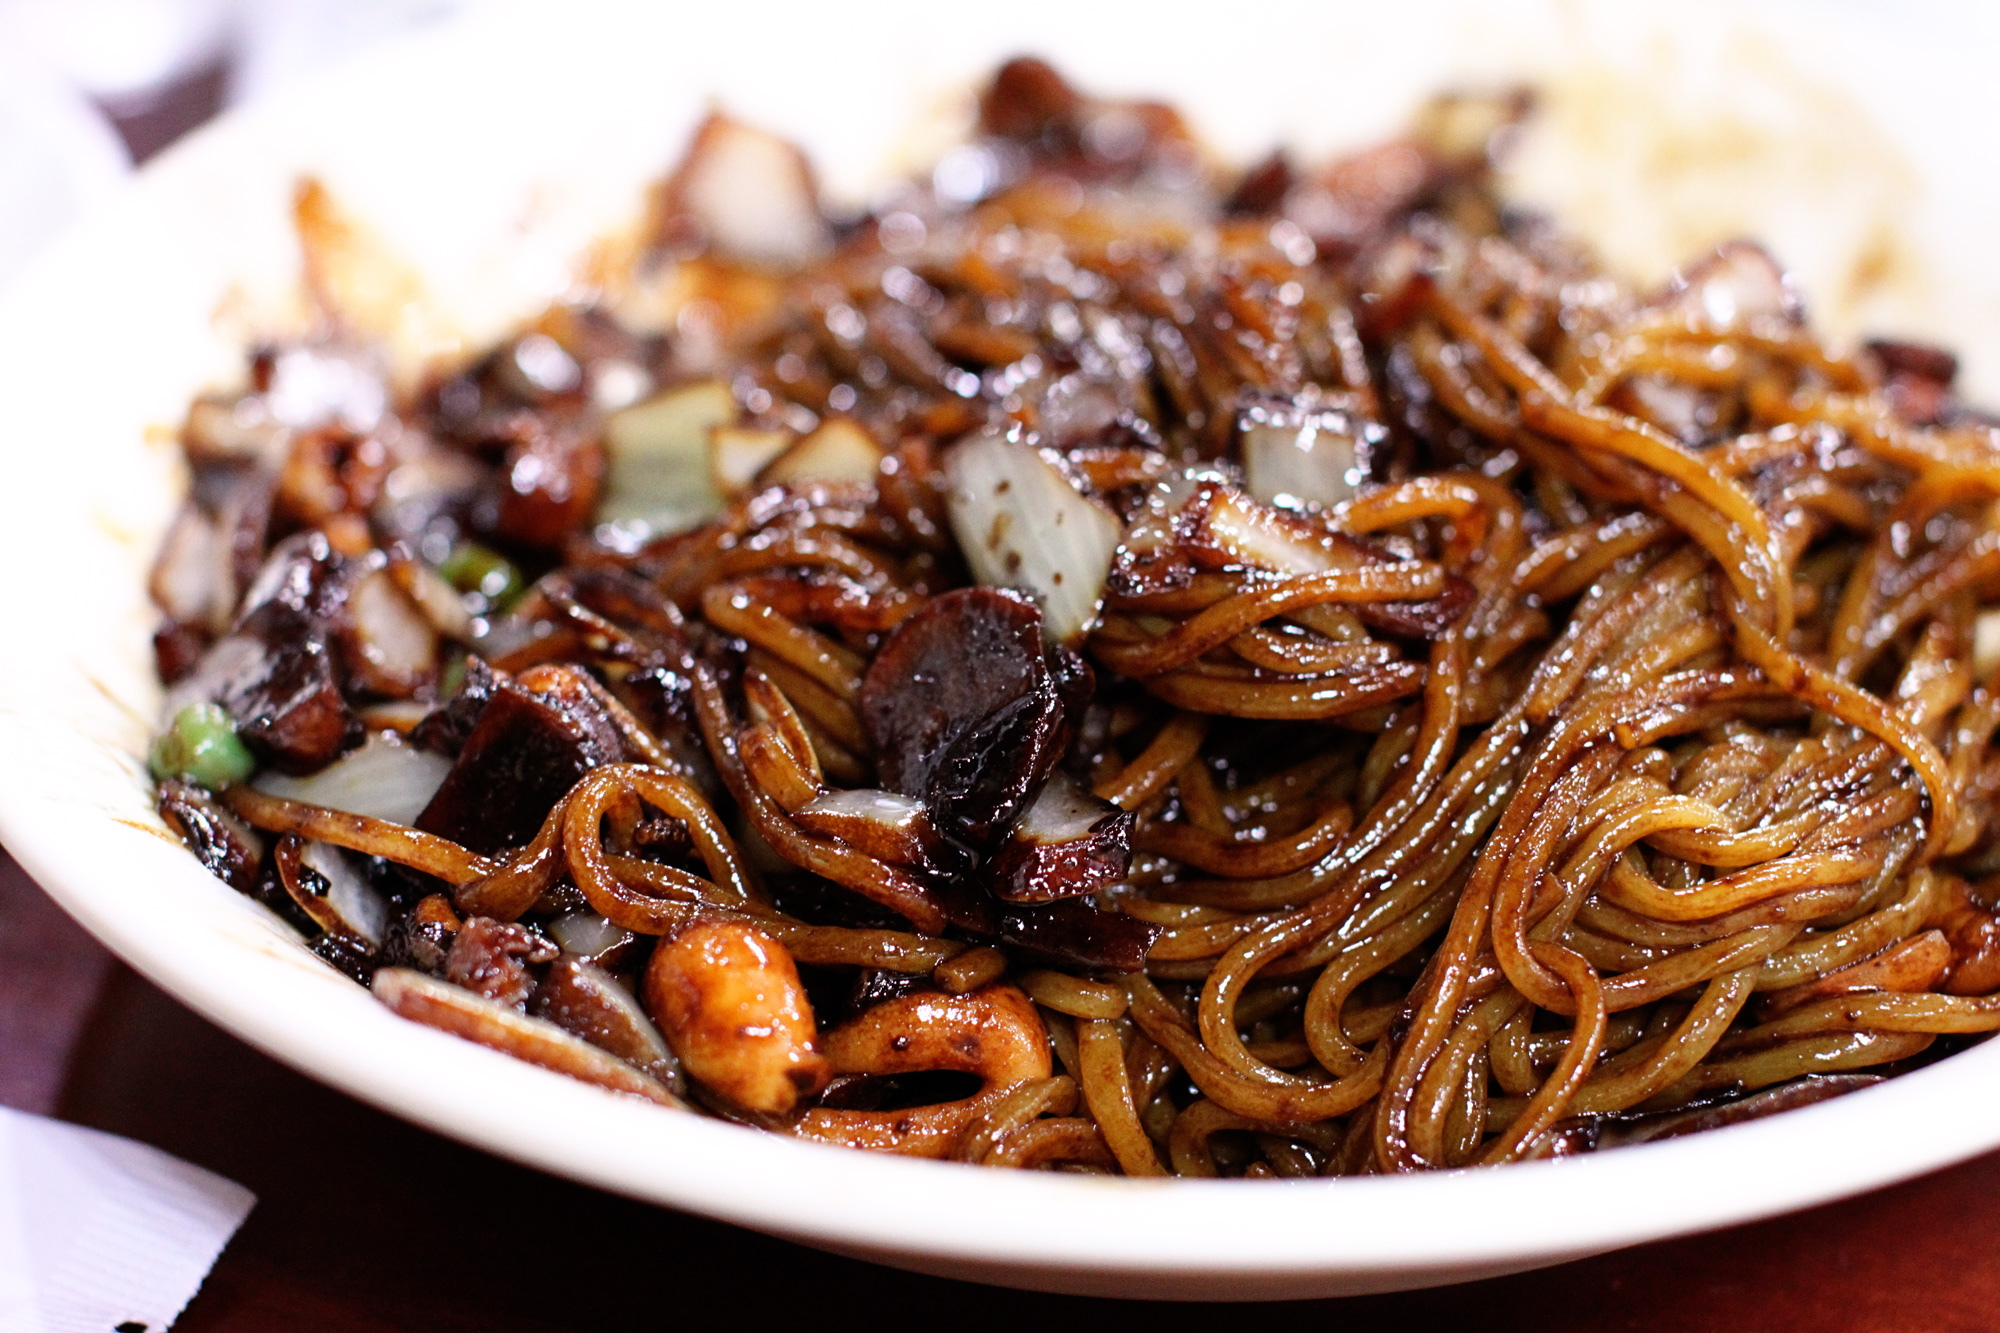 top-best-korean-foods-you-must-try-delicious-food-ever-korean-cuisine-tinoshare.com-blogowebgo.com Jjajangmyeon (짜장면)